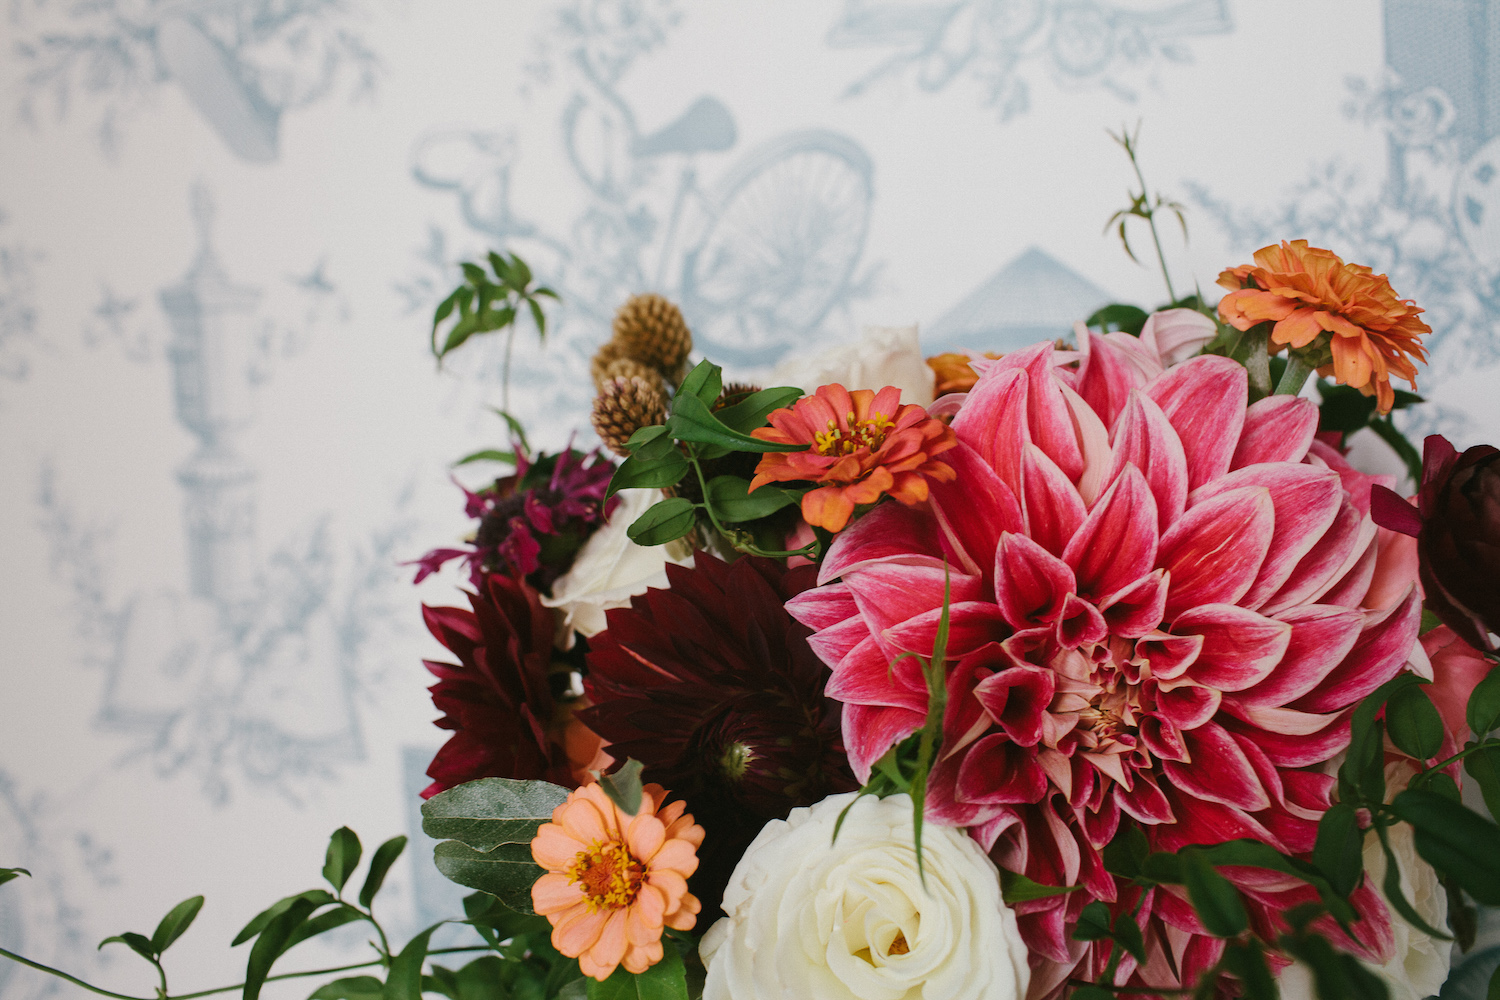 Full Aperture Floral & Corey Torpie Photography  - Brooklyn Wedding - 9.jpeg